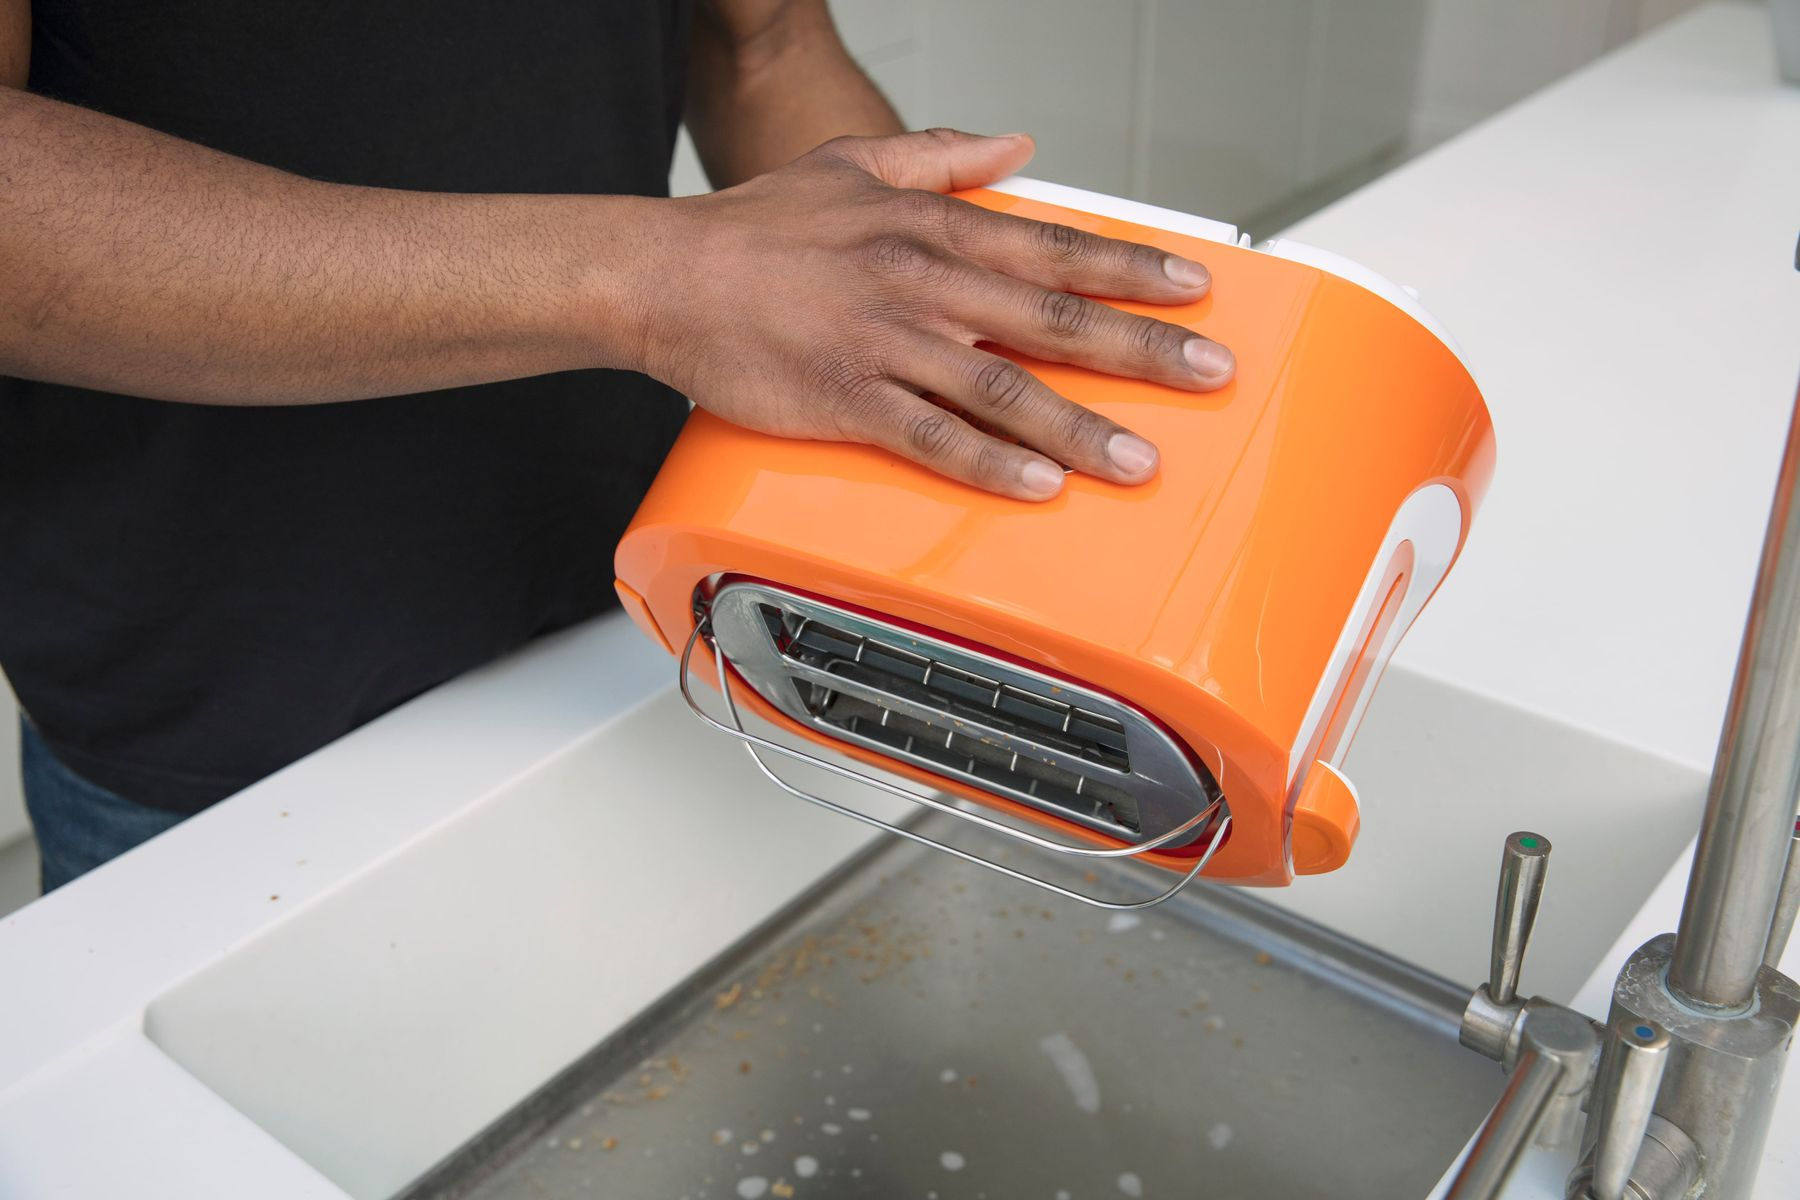 Step 5: Emptying the bread crumbs from an orange toaster into a sink.